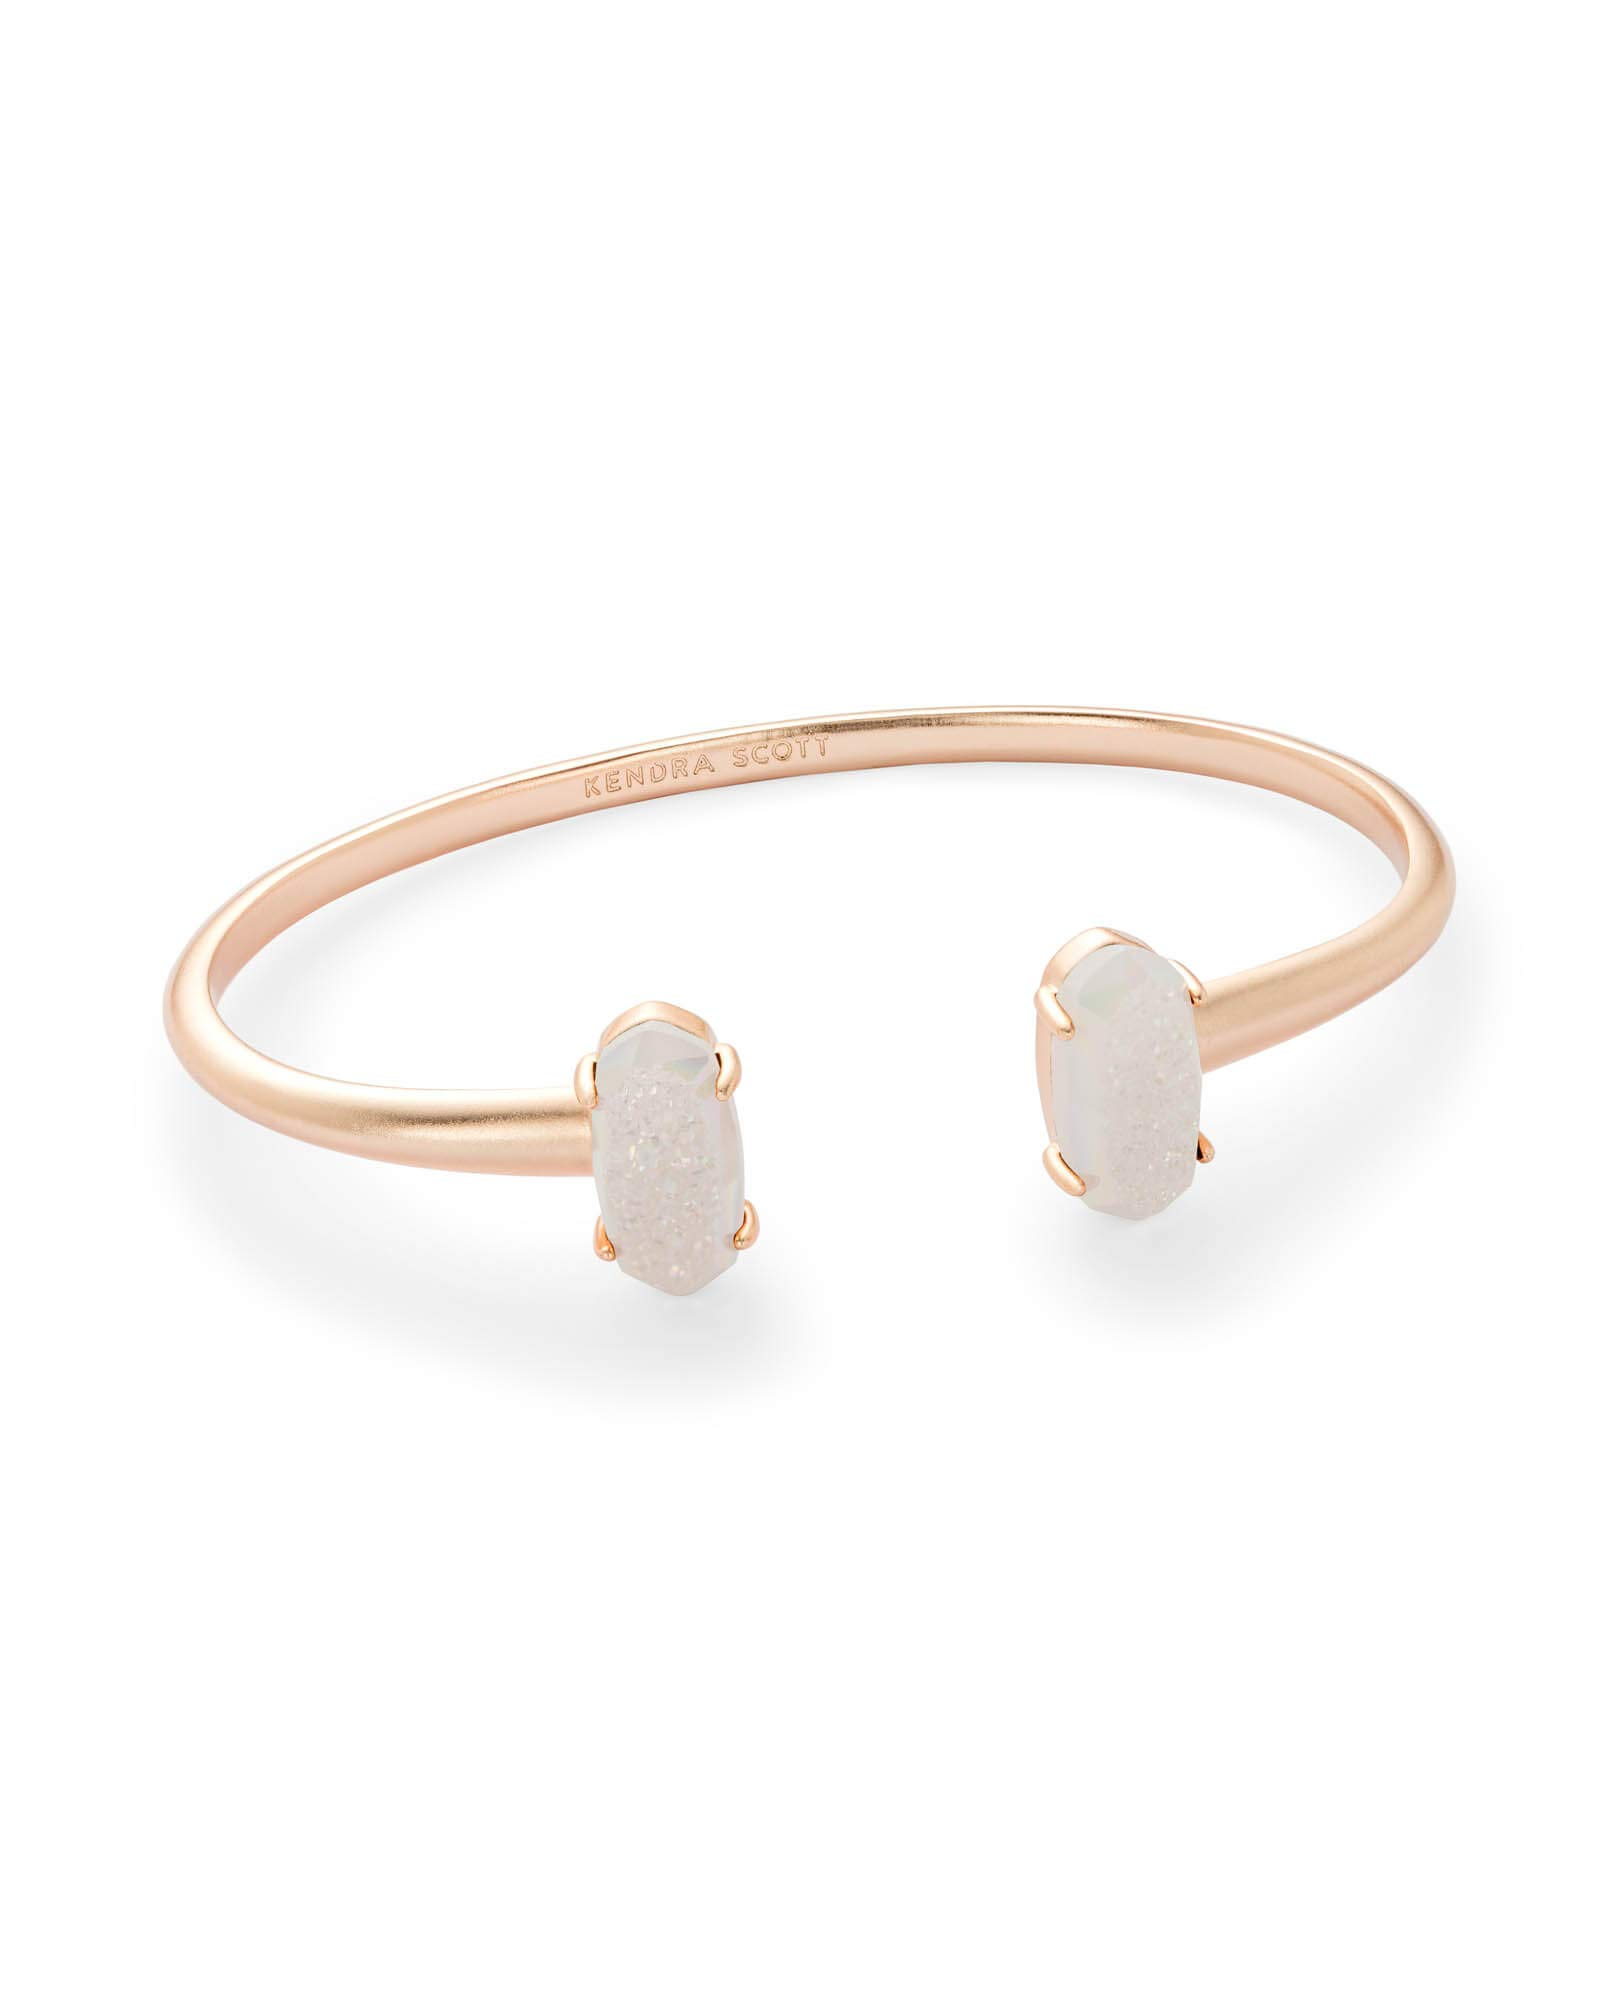 Kendra Scott Edie Cuff Bracelet (Rose Gold and Iridescent Drusy)